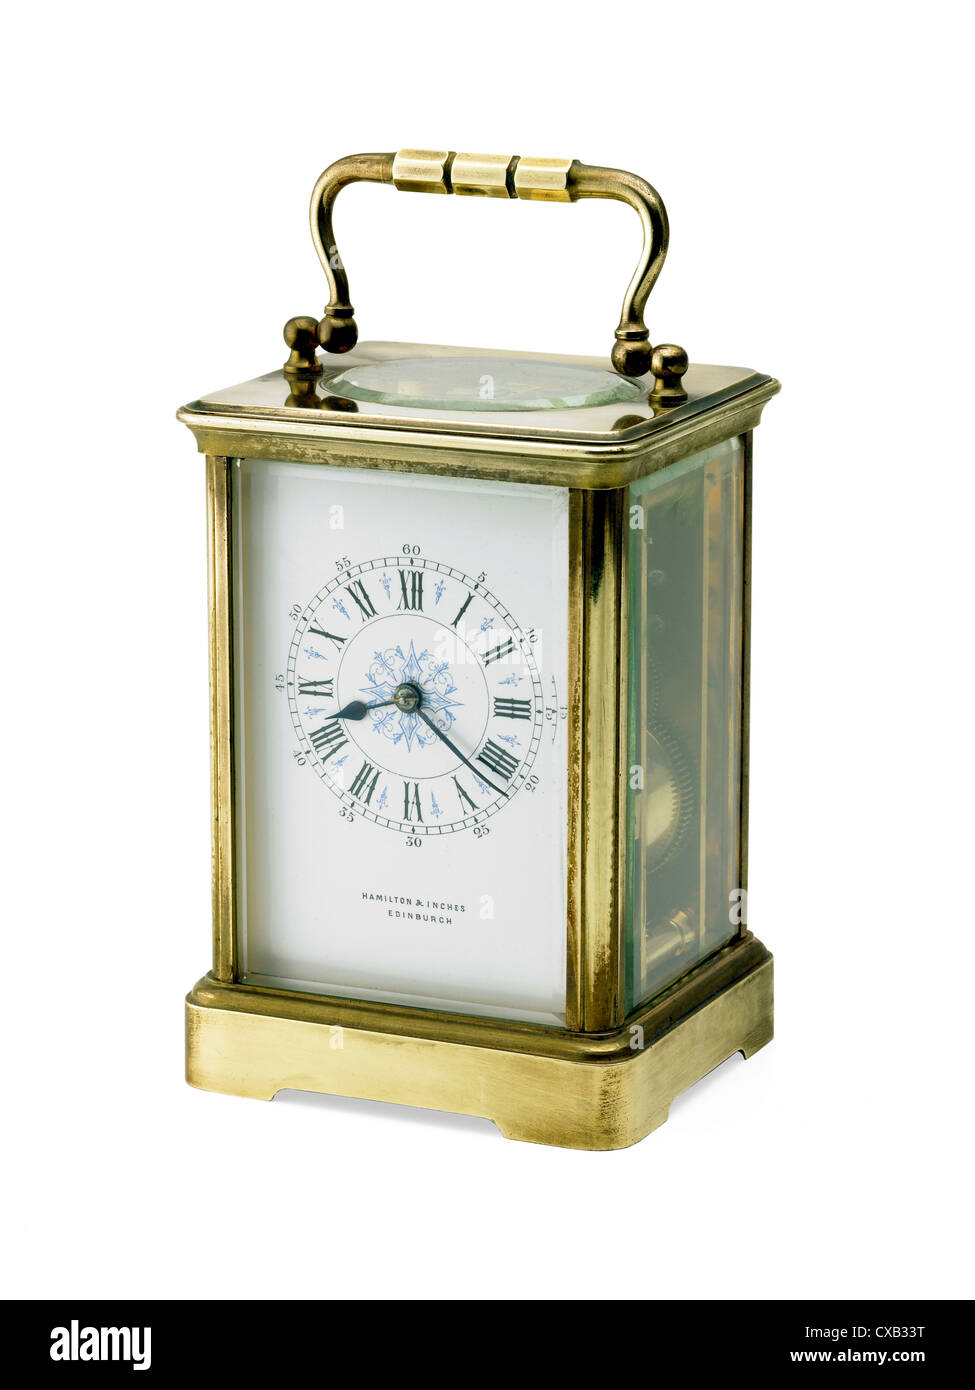 French carriage clock - Stock Image